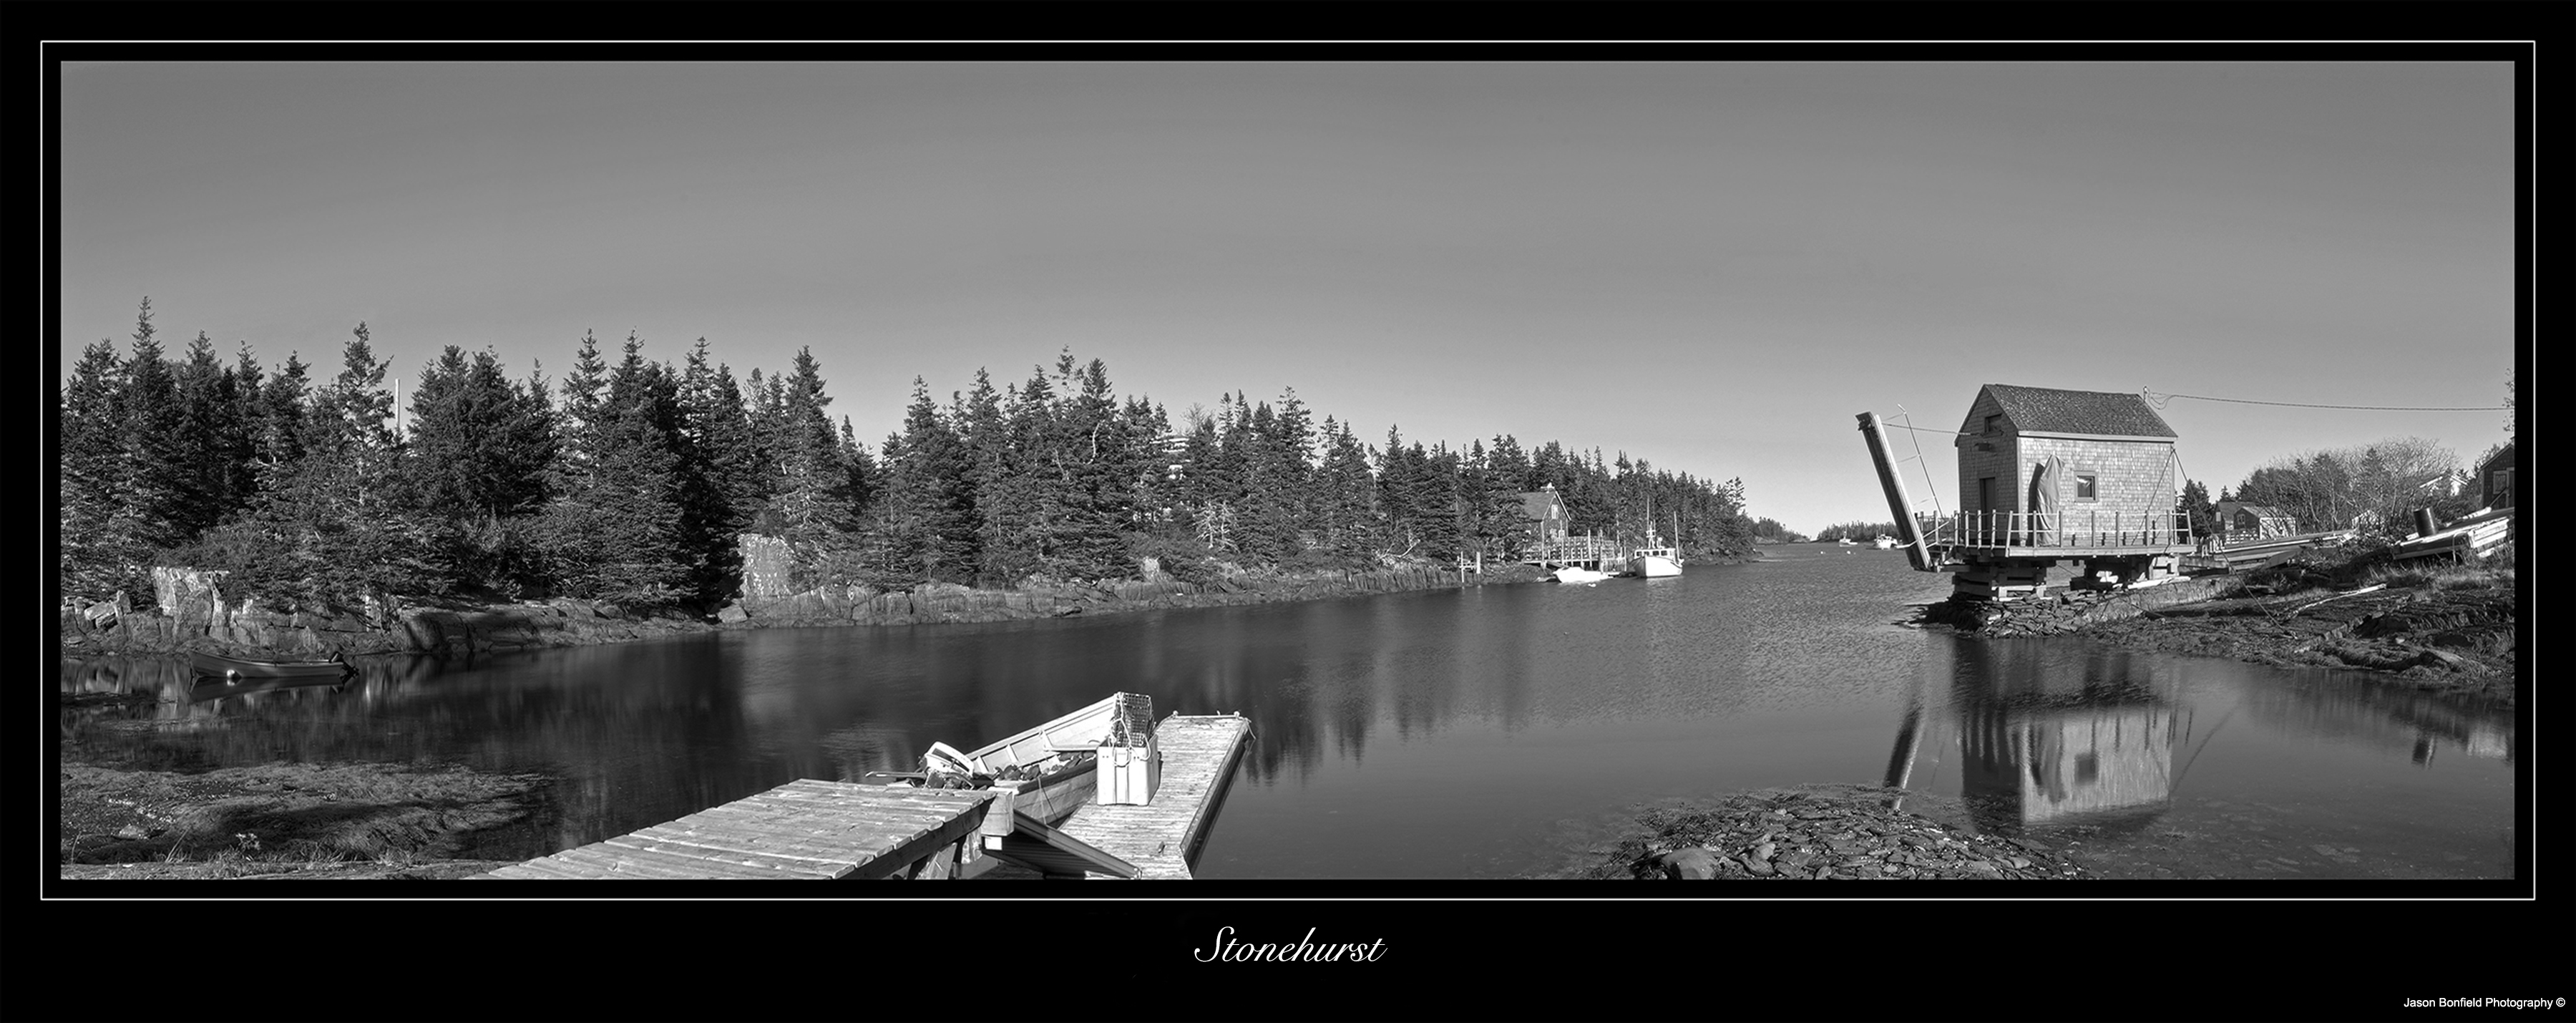 Black and white panoramic landscape picture of a small fishing hut, a jetty and trees reflected in the sea in Stonehurst, Nova Scotia, Canada.